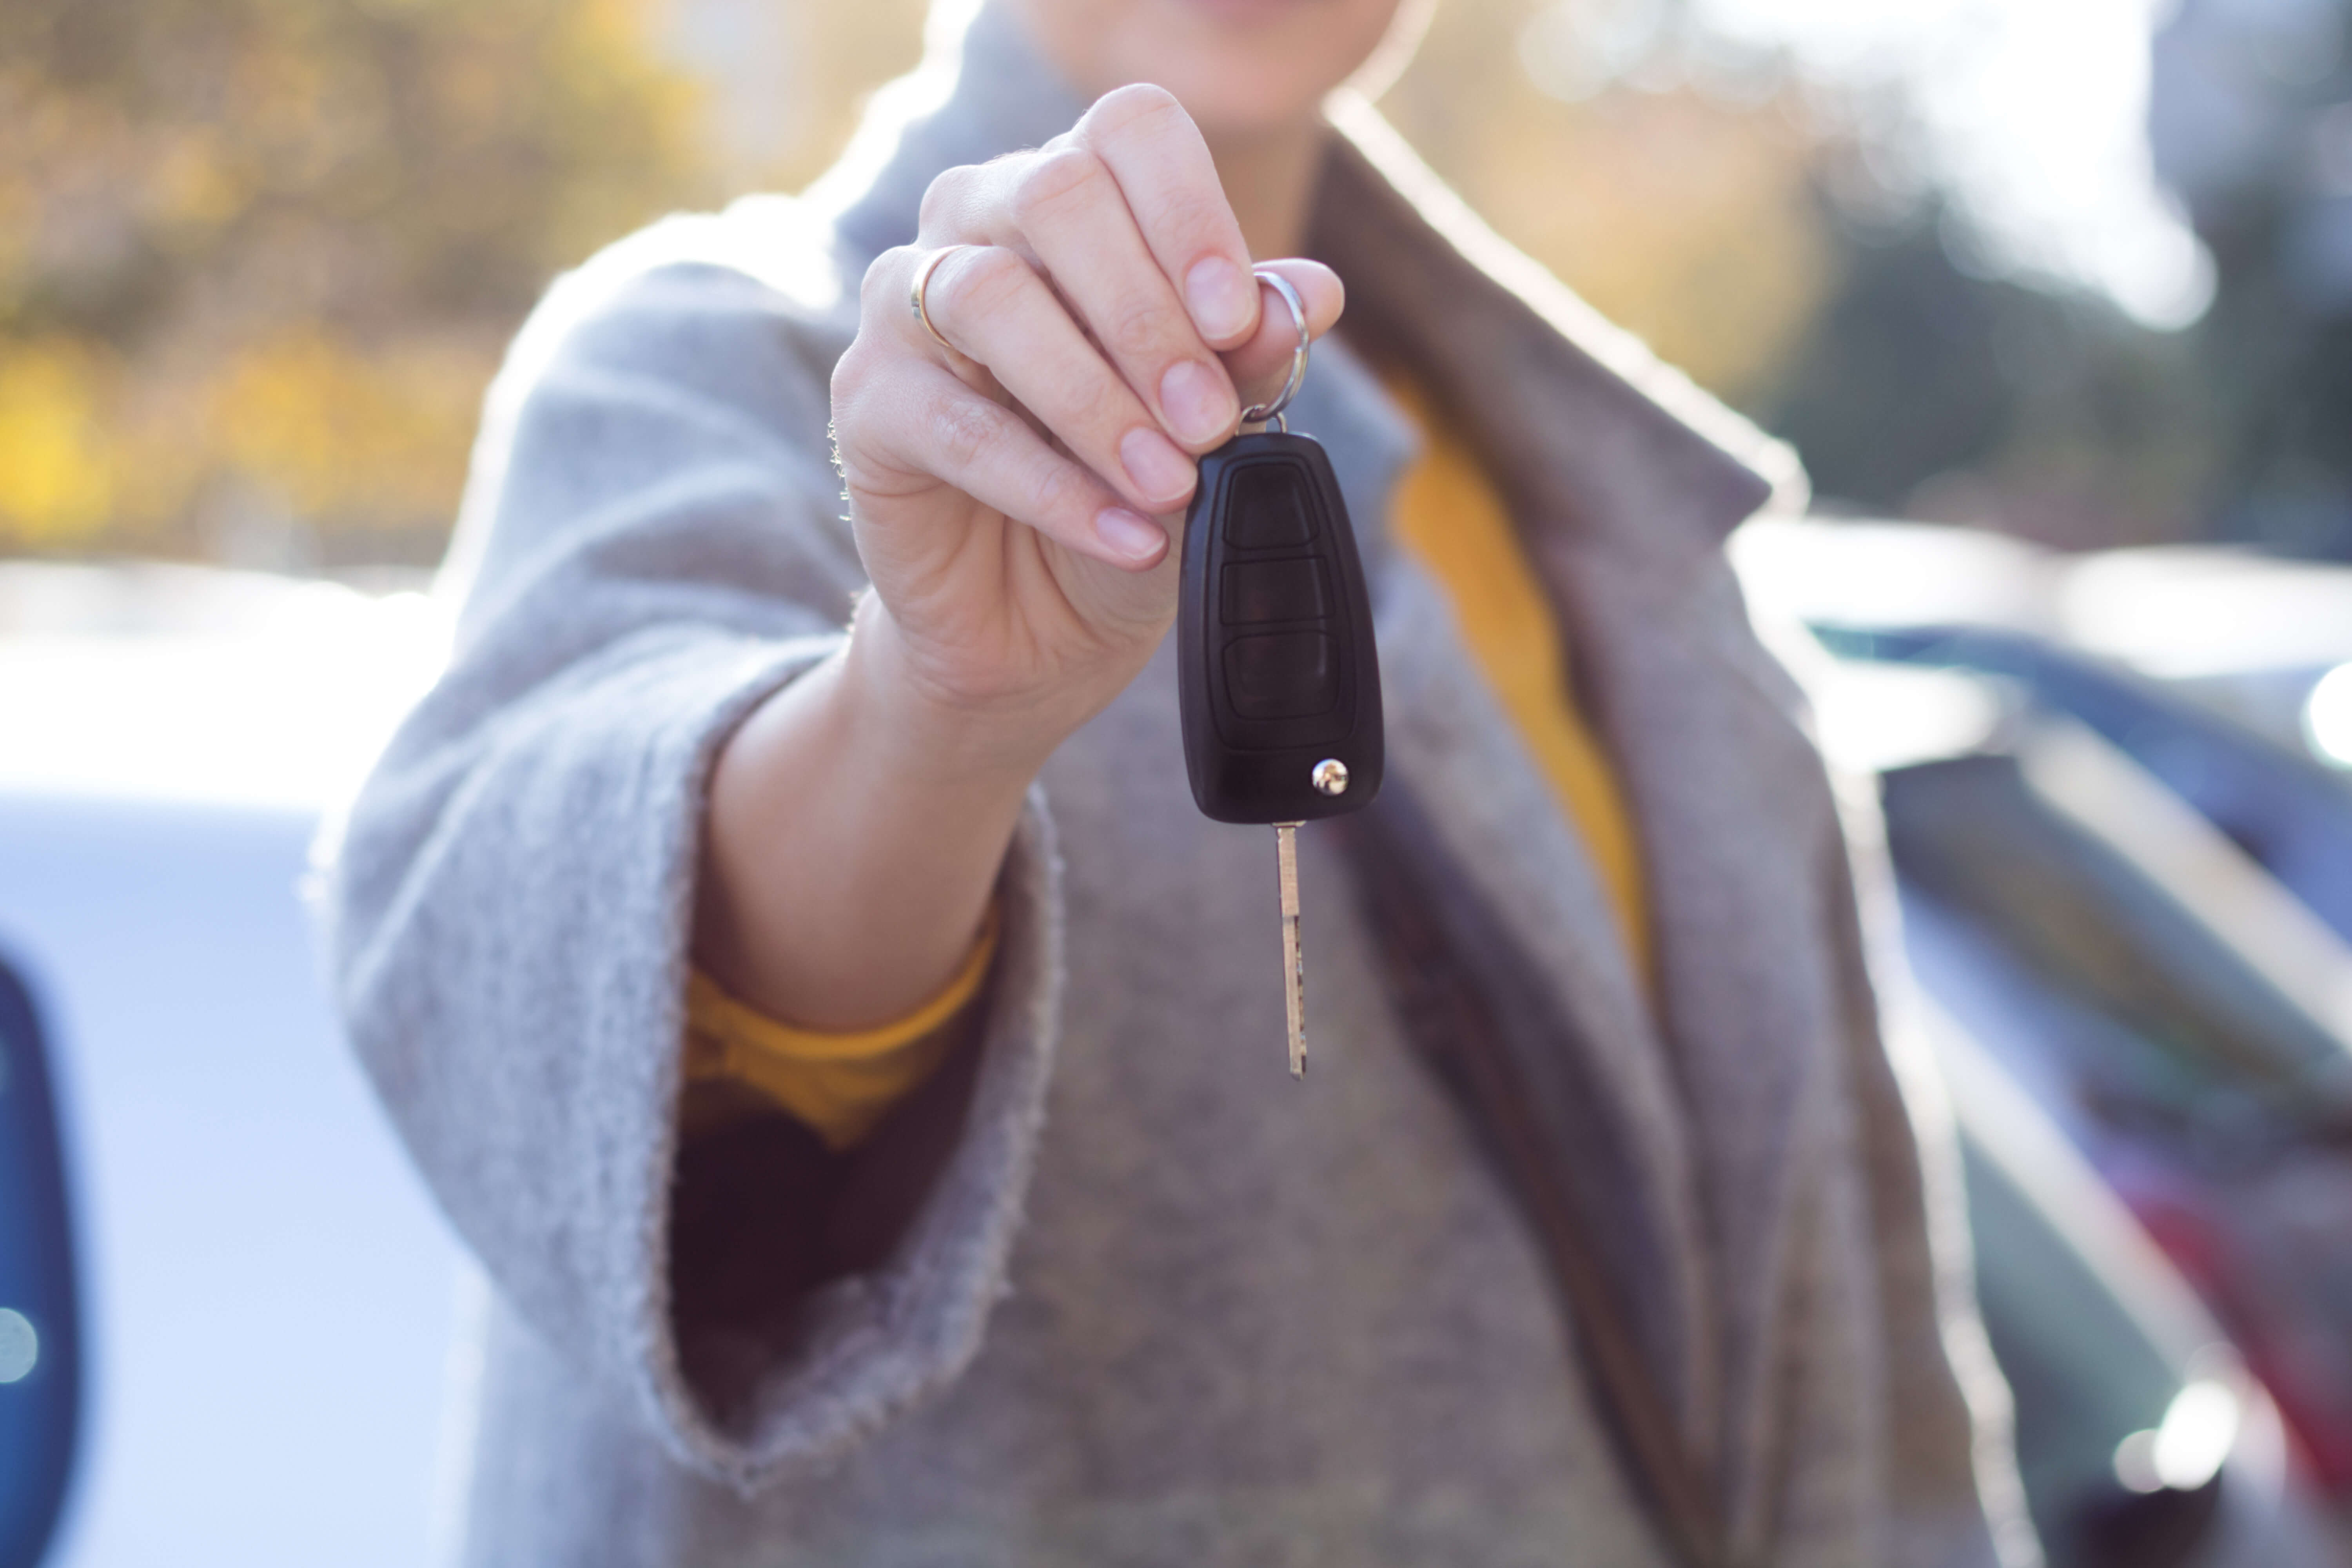 FICO Survey: UK Car Buyers Ready for Digital Financing — But Adoption Is Slow